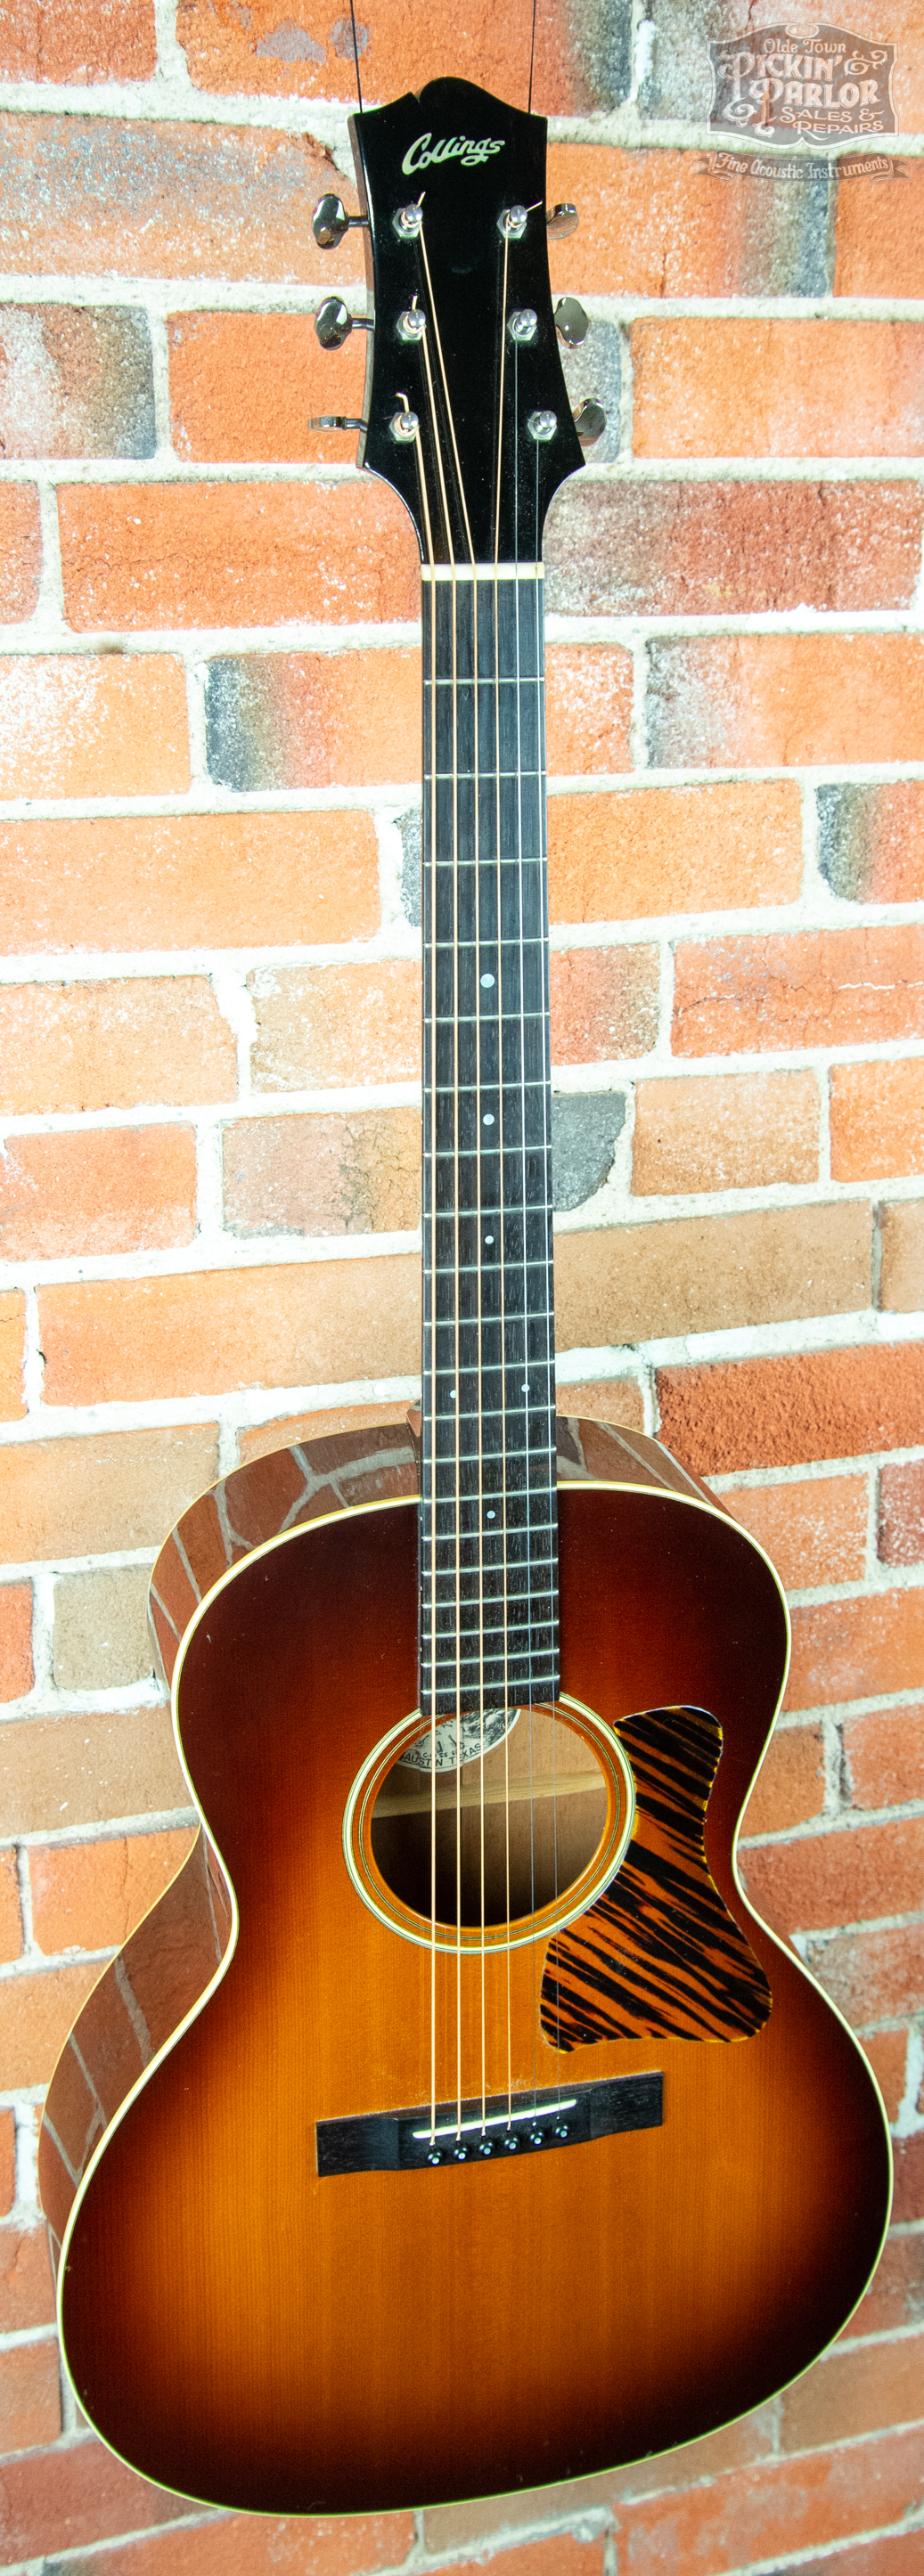 2006 Collings C10-SS